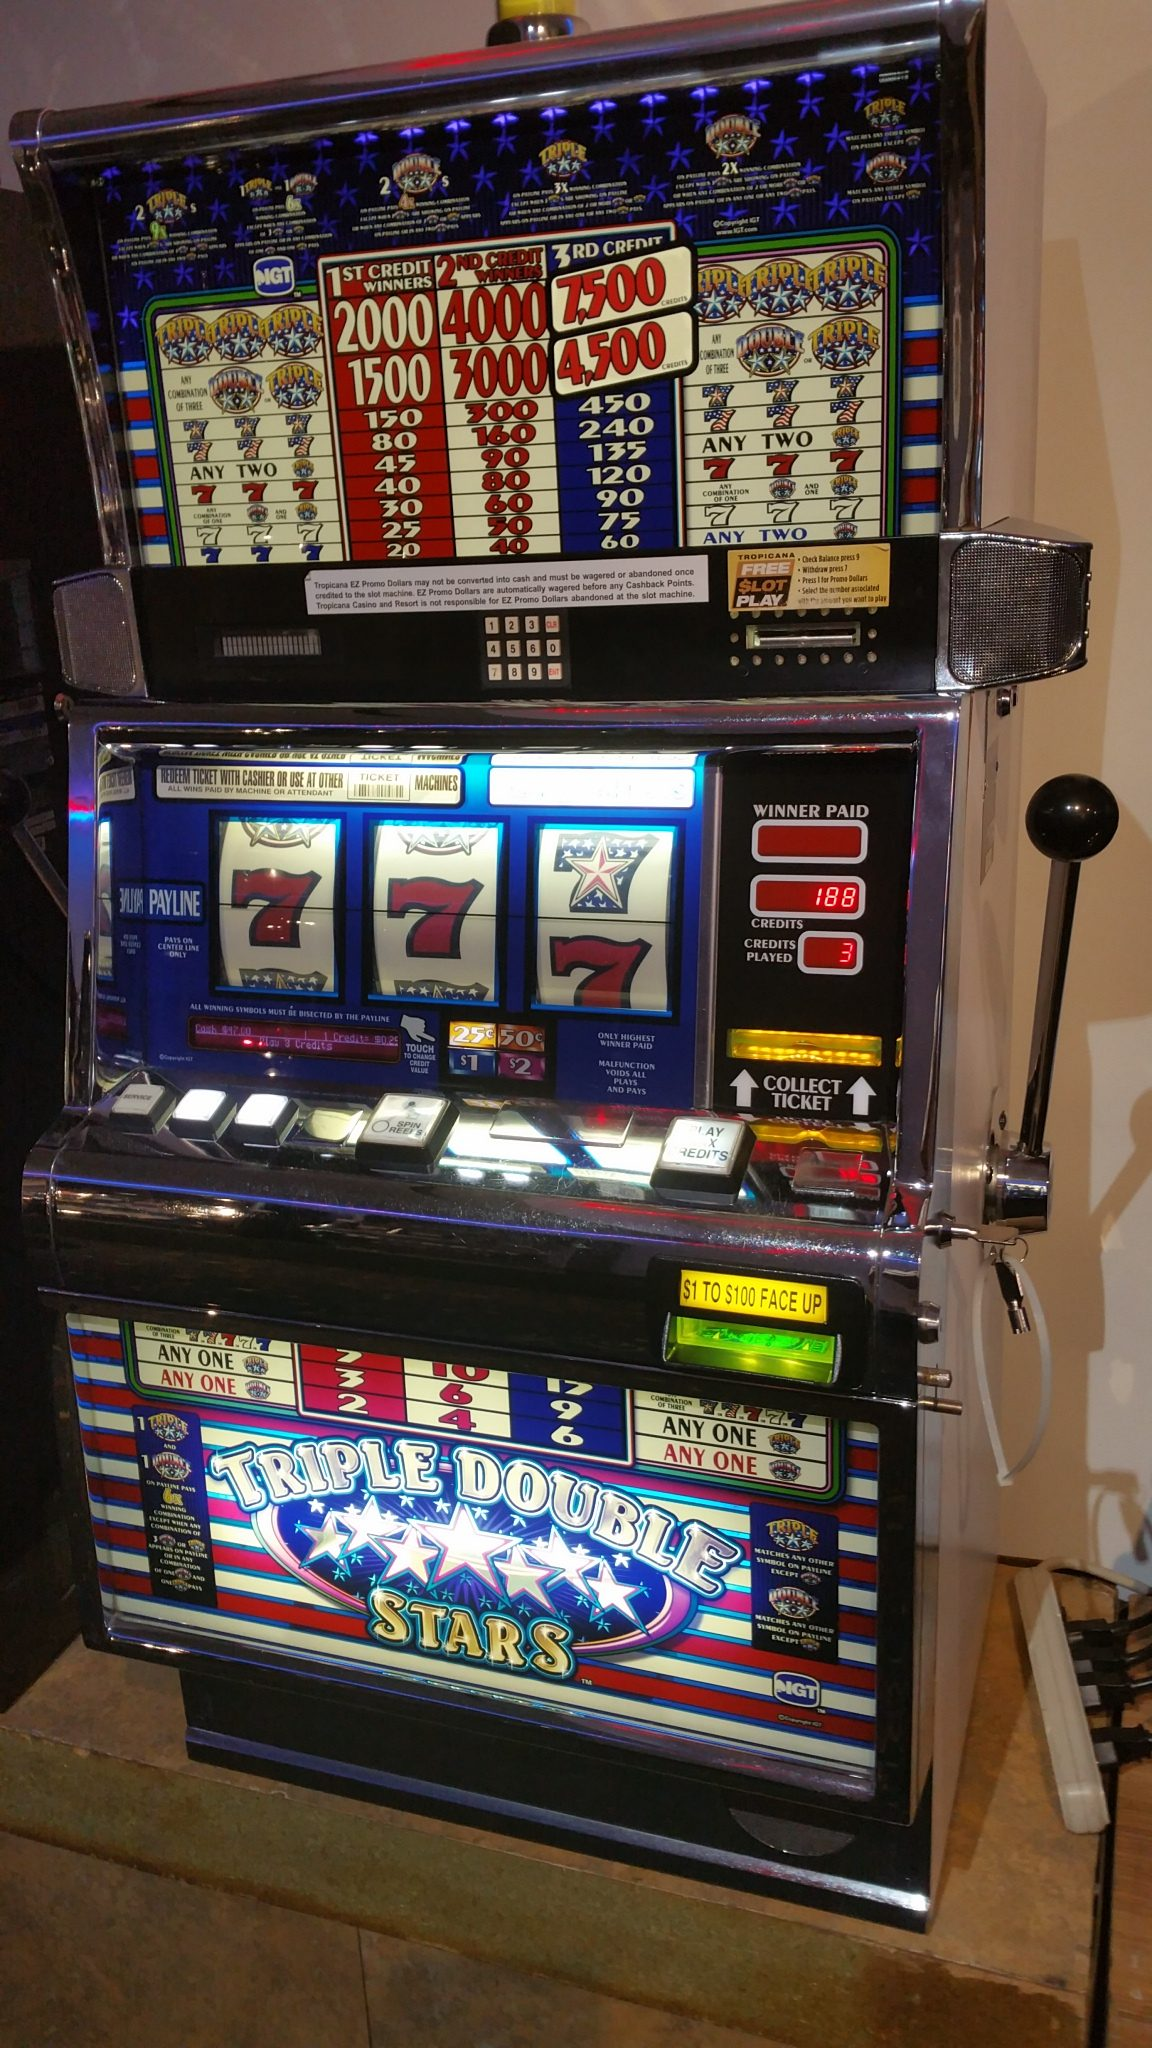 IGT S2000 Triple Double Stars Slot Machine Multi-denominational